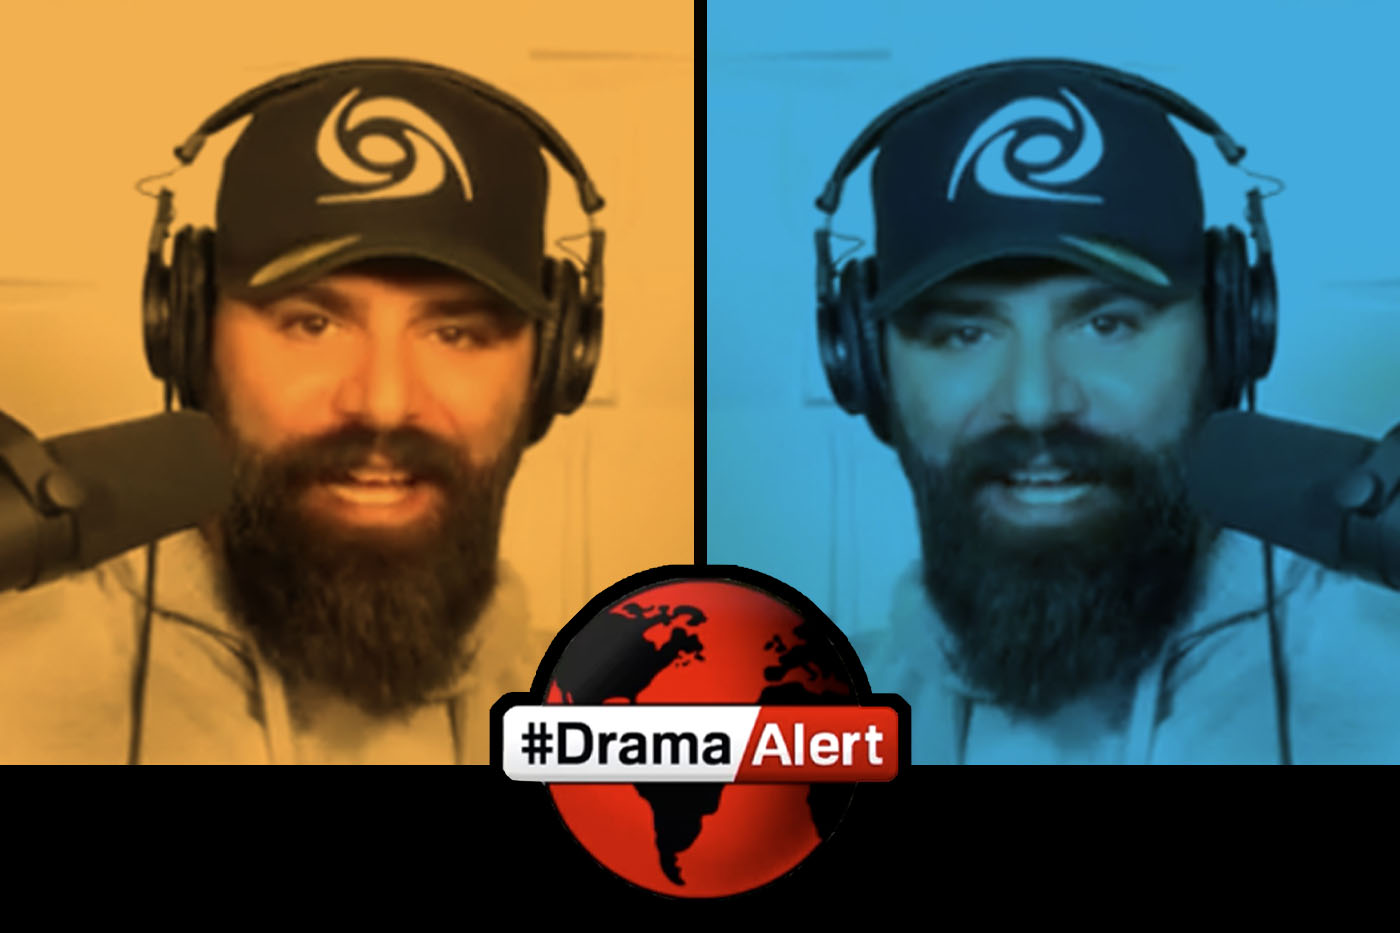 YouTuber Keemstar on Being 'Half-Loved and Half-Hated' and What's Coming Next